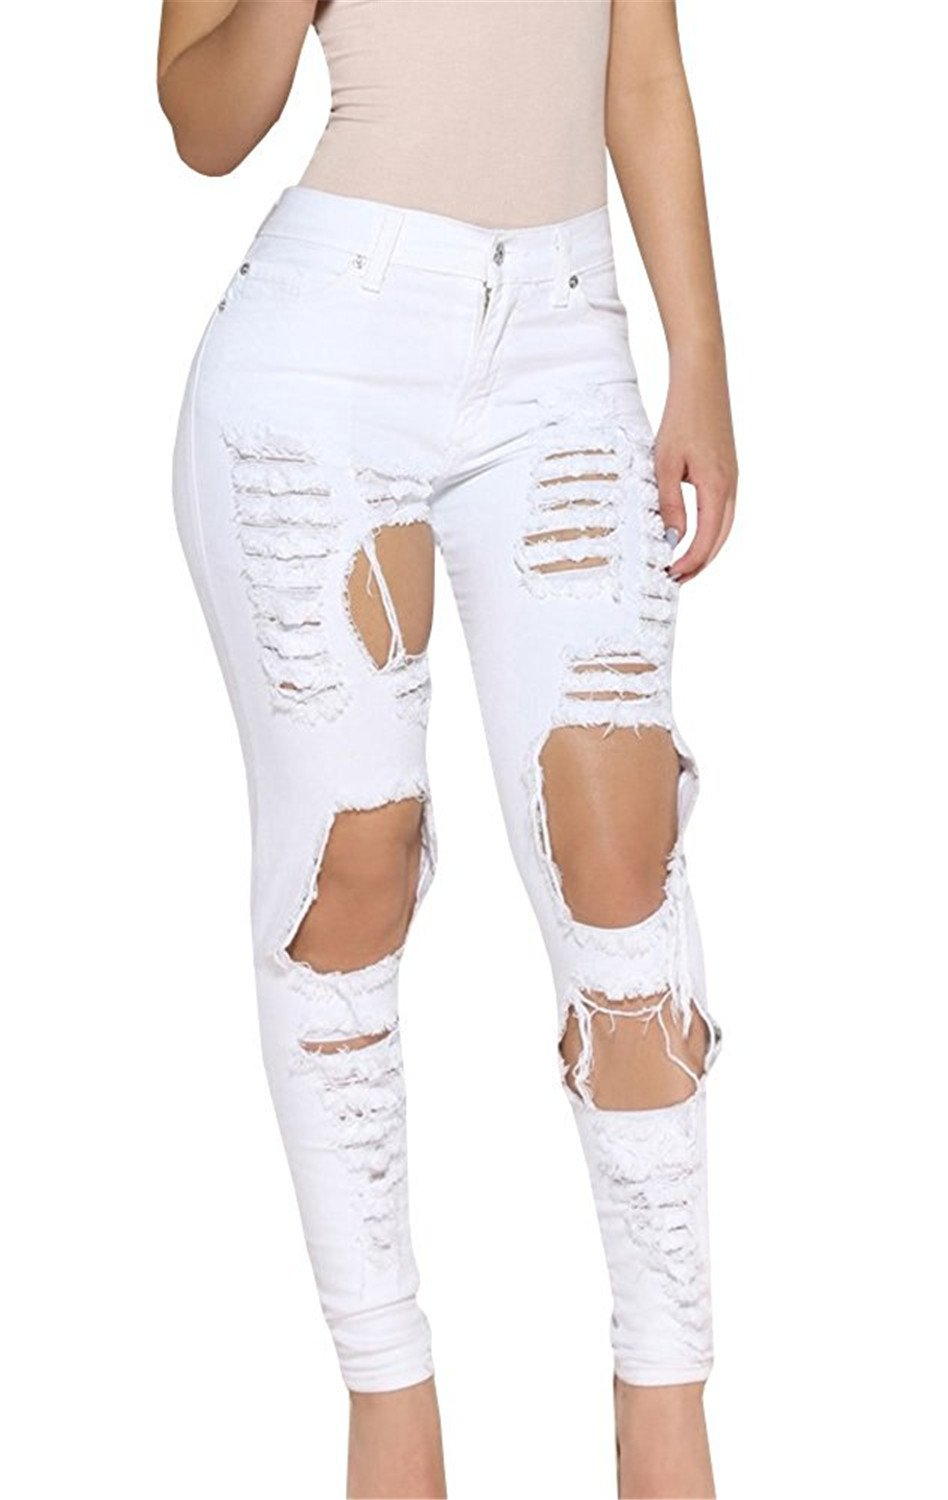 Cheryl Bull Fashion Women Big Holes Ripped Jeans Skinny High Waisted Pencil Pants Black White Plus Size Jeans